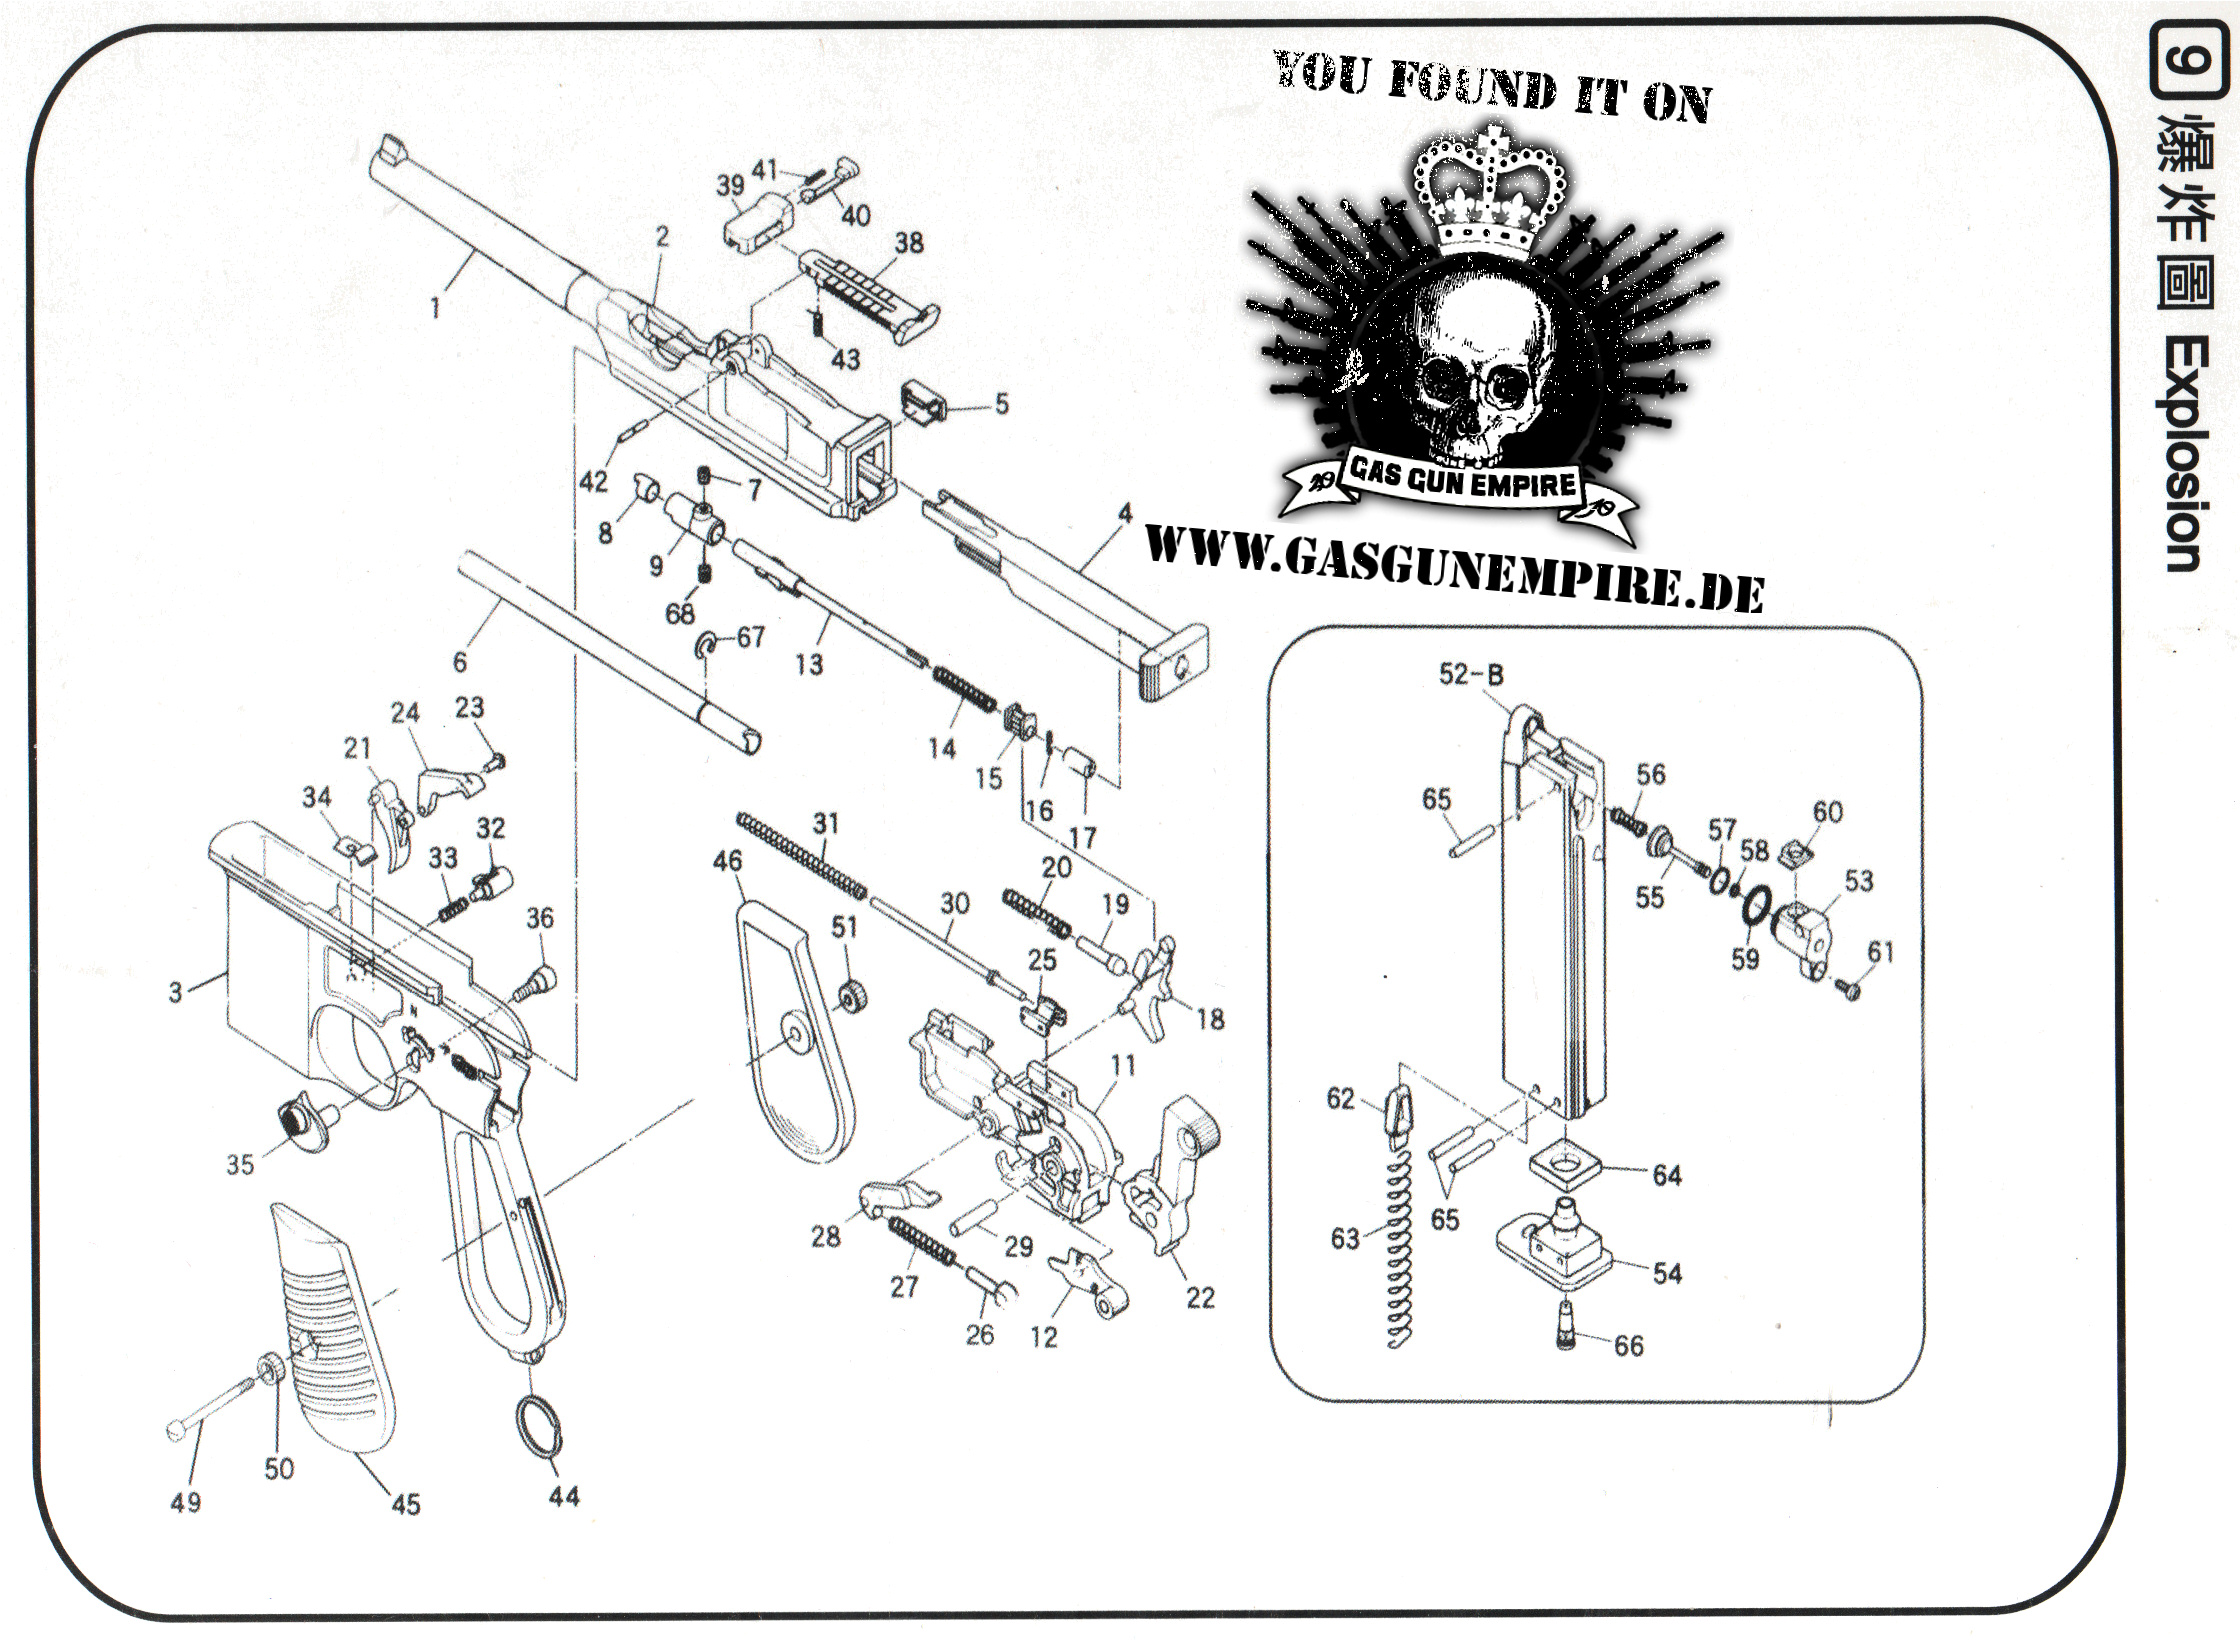 Explosionszeichnungen Explosion Drawing How Tos Manual Guide